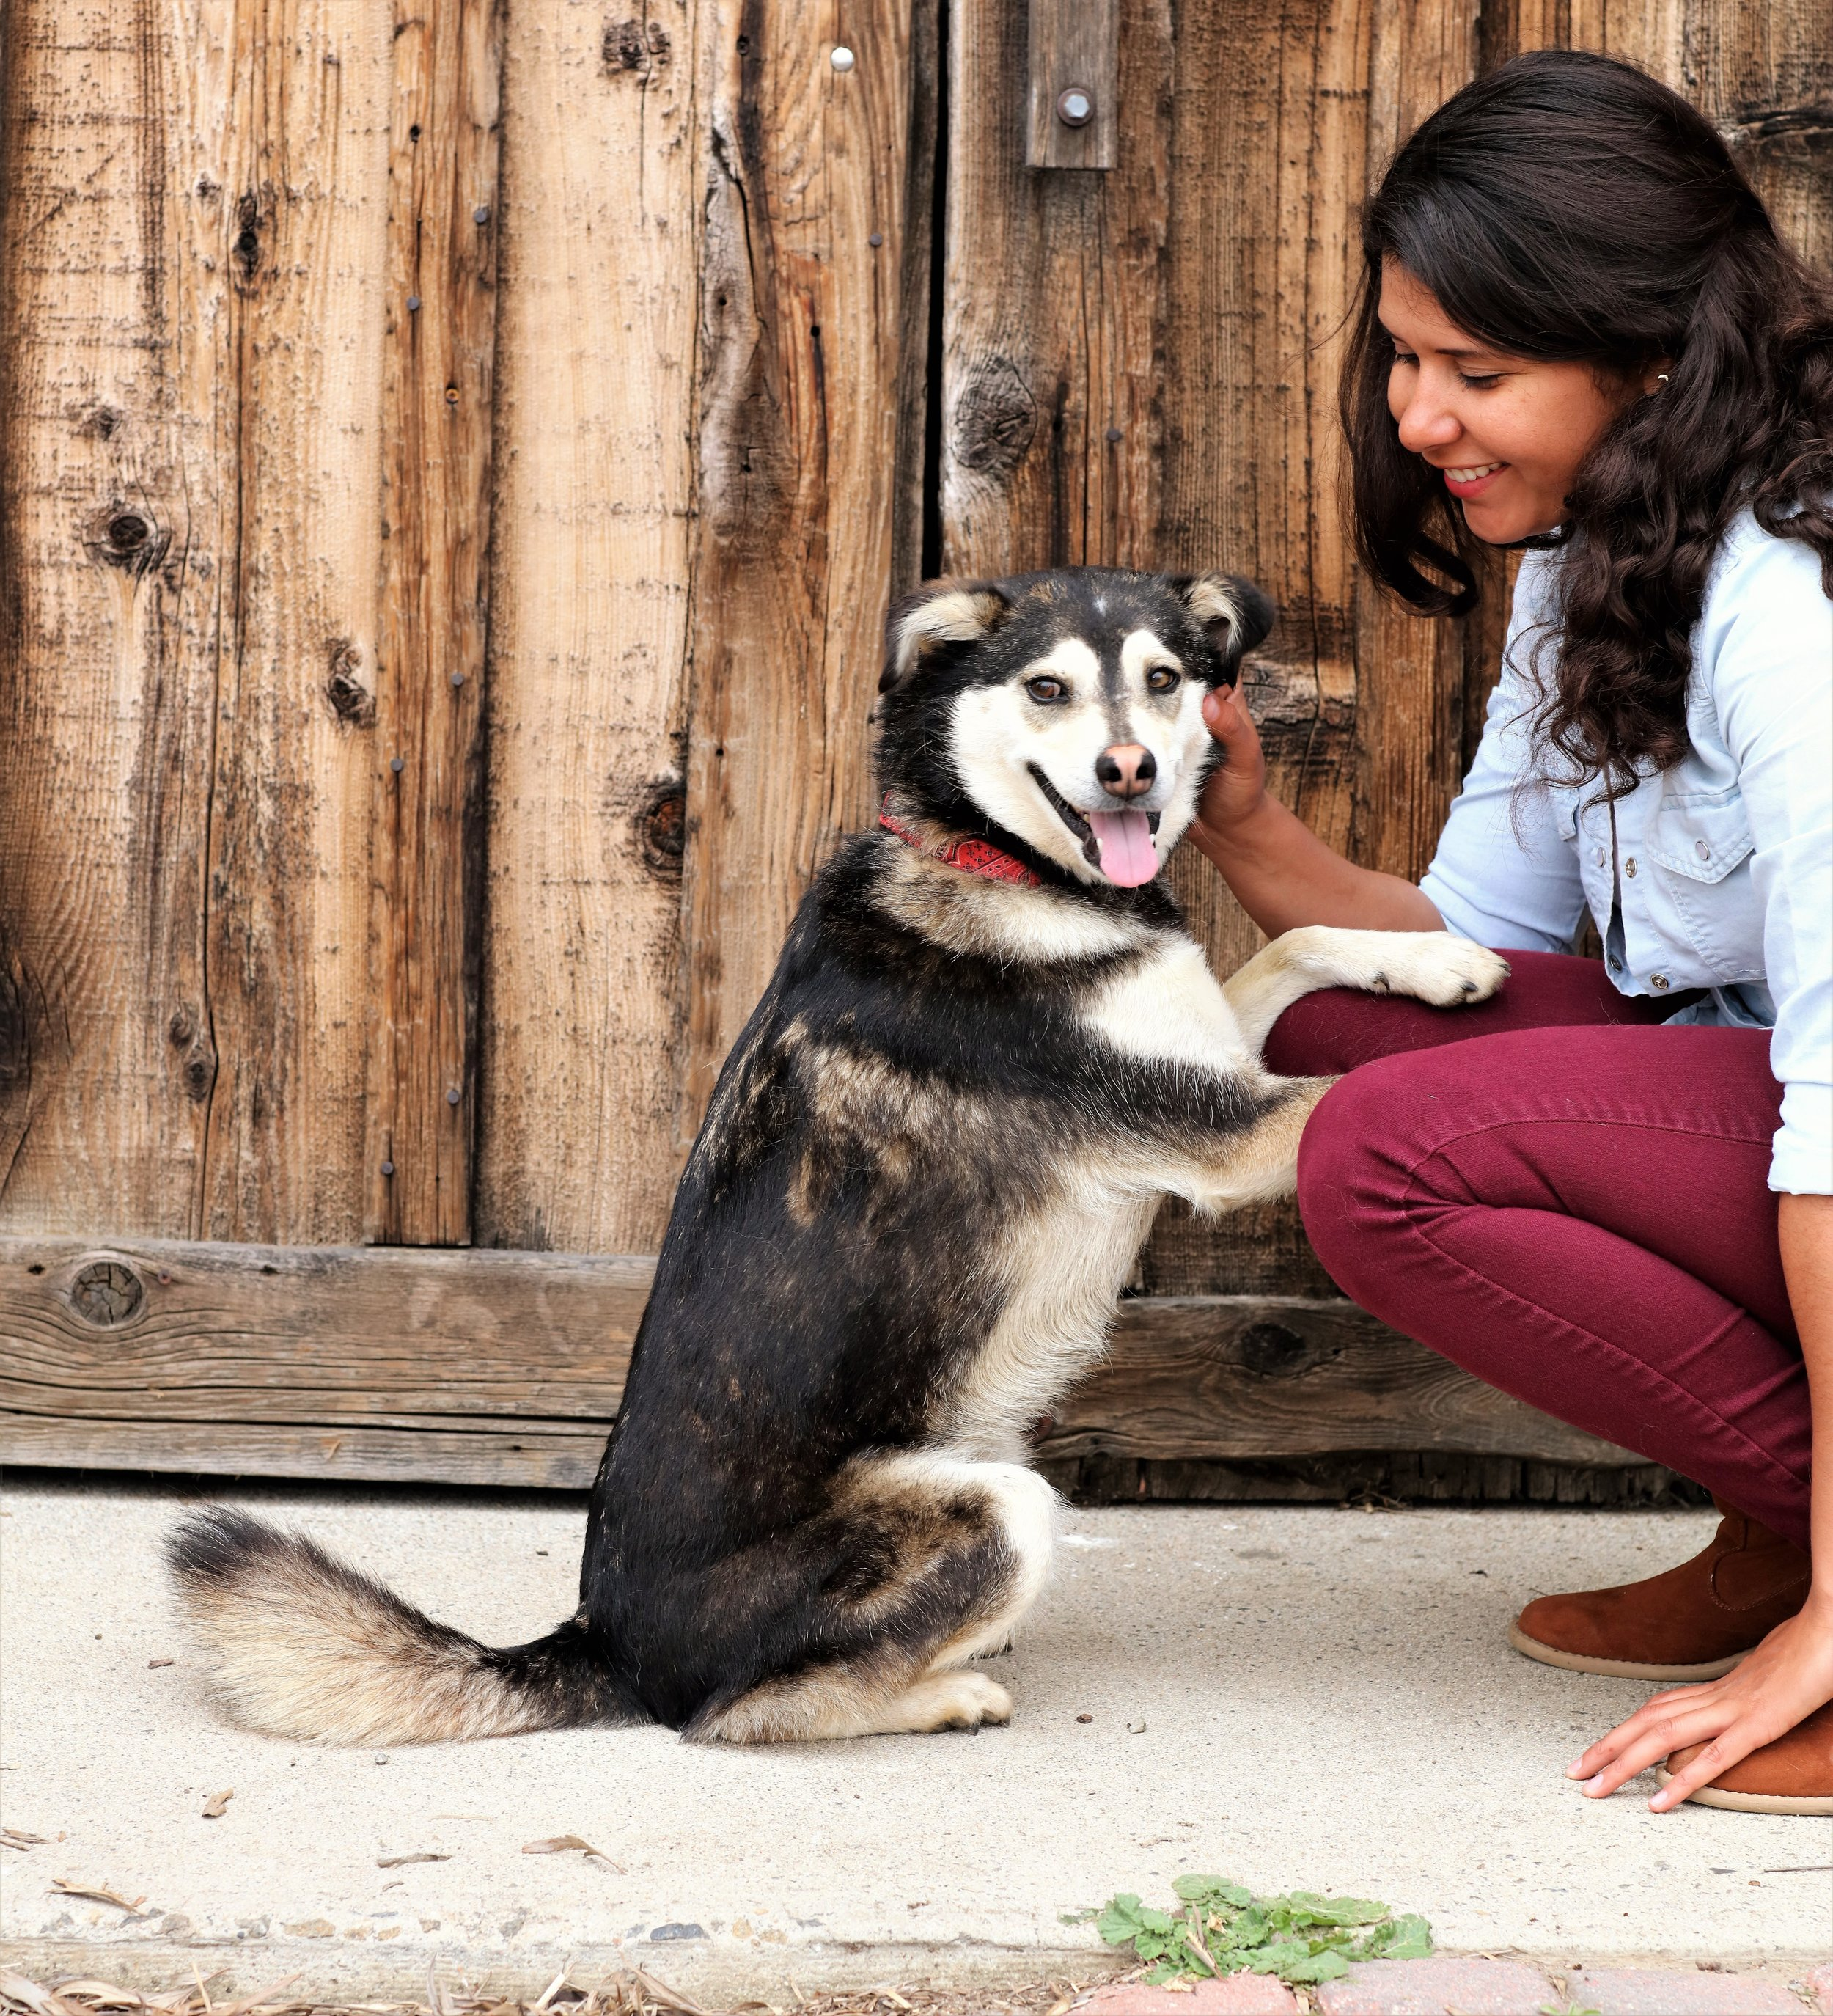 A Hispanic female poses with her companion dog in front of a fence.